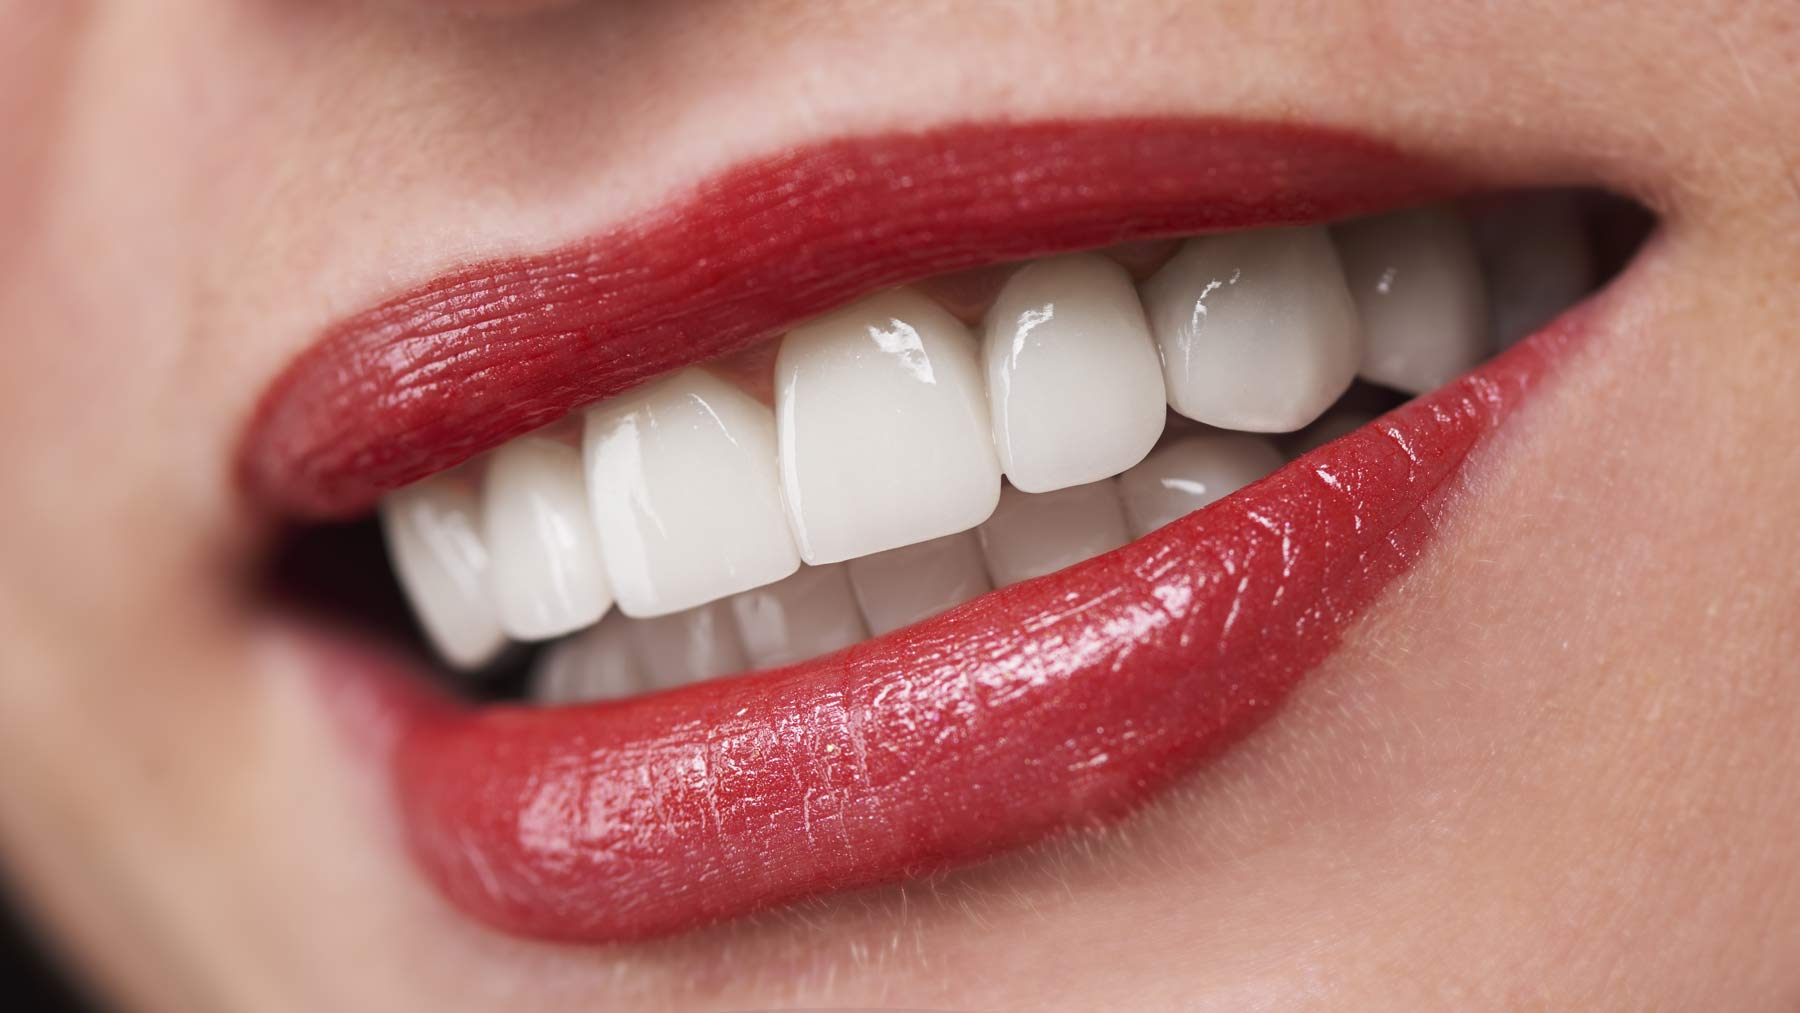 All-On-4 Dental Implants - New Teeth in a Day!